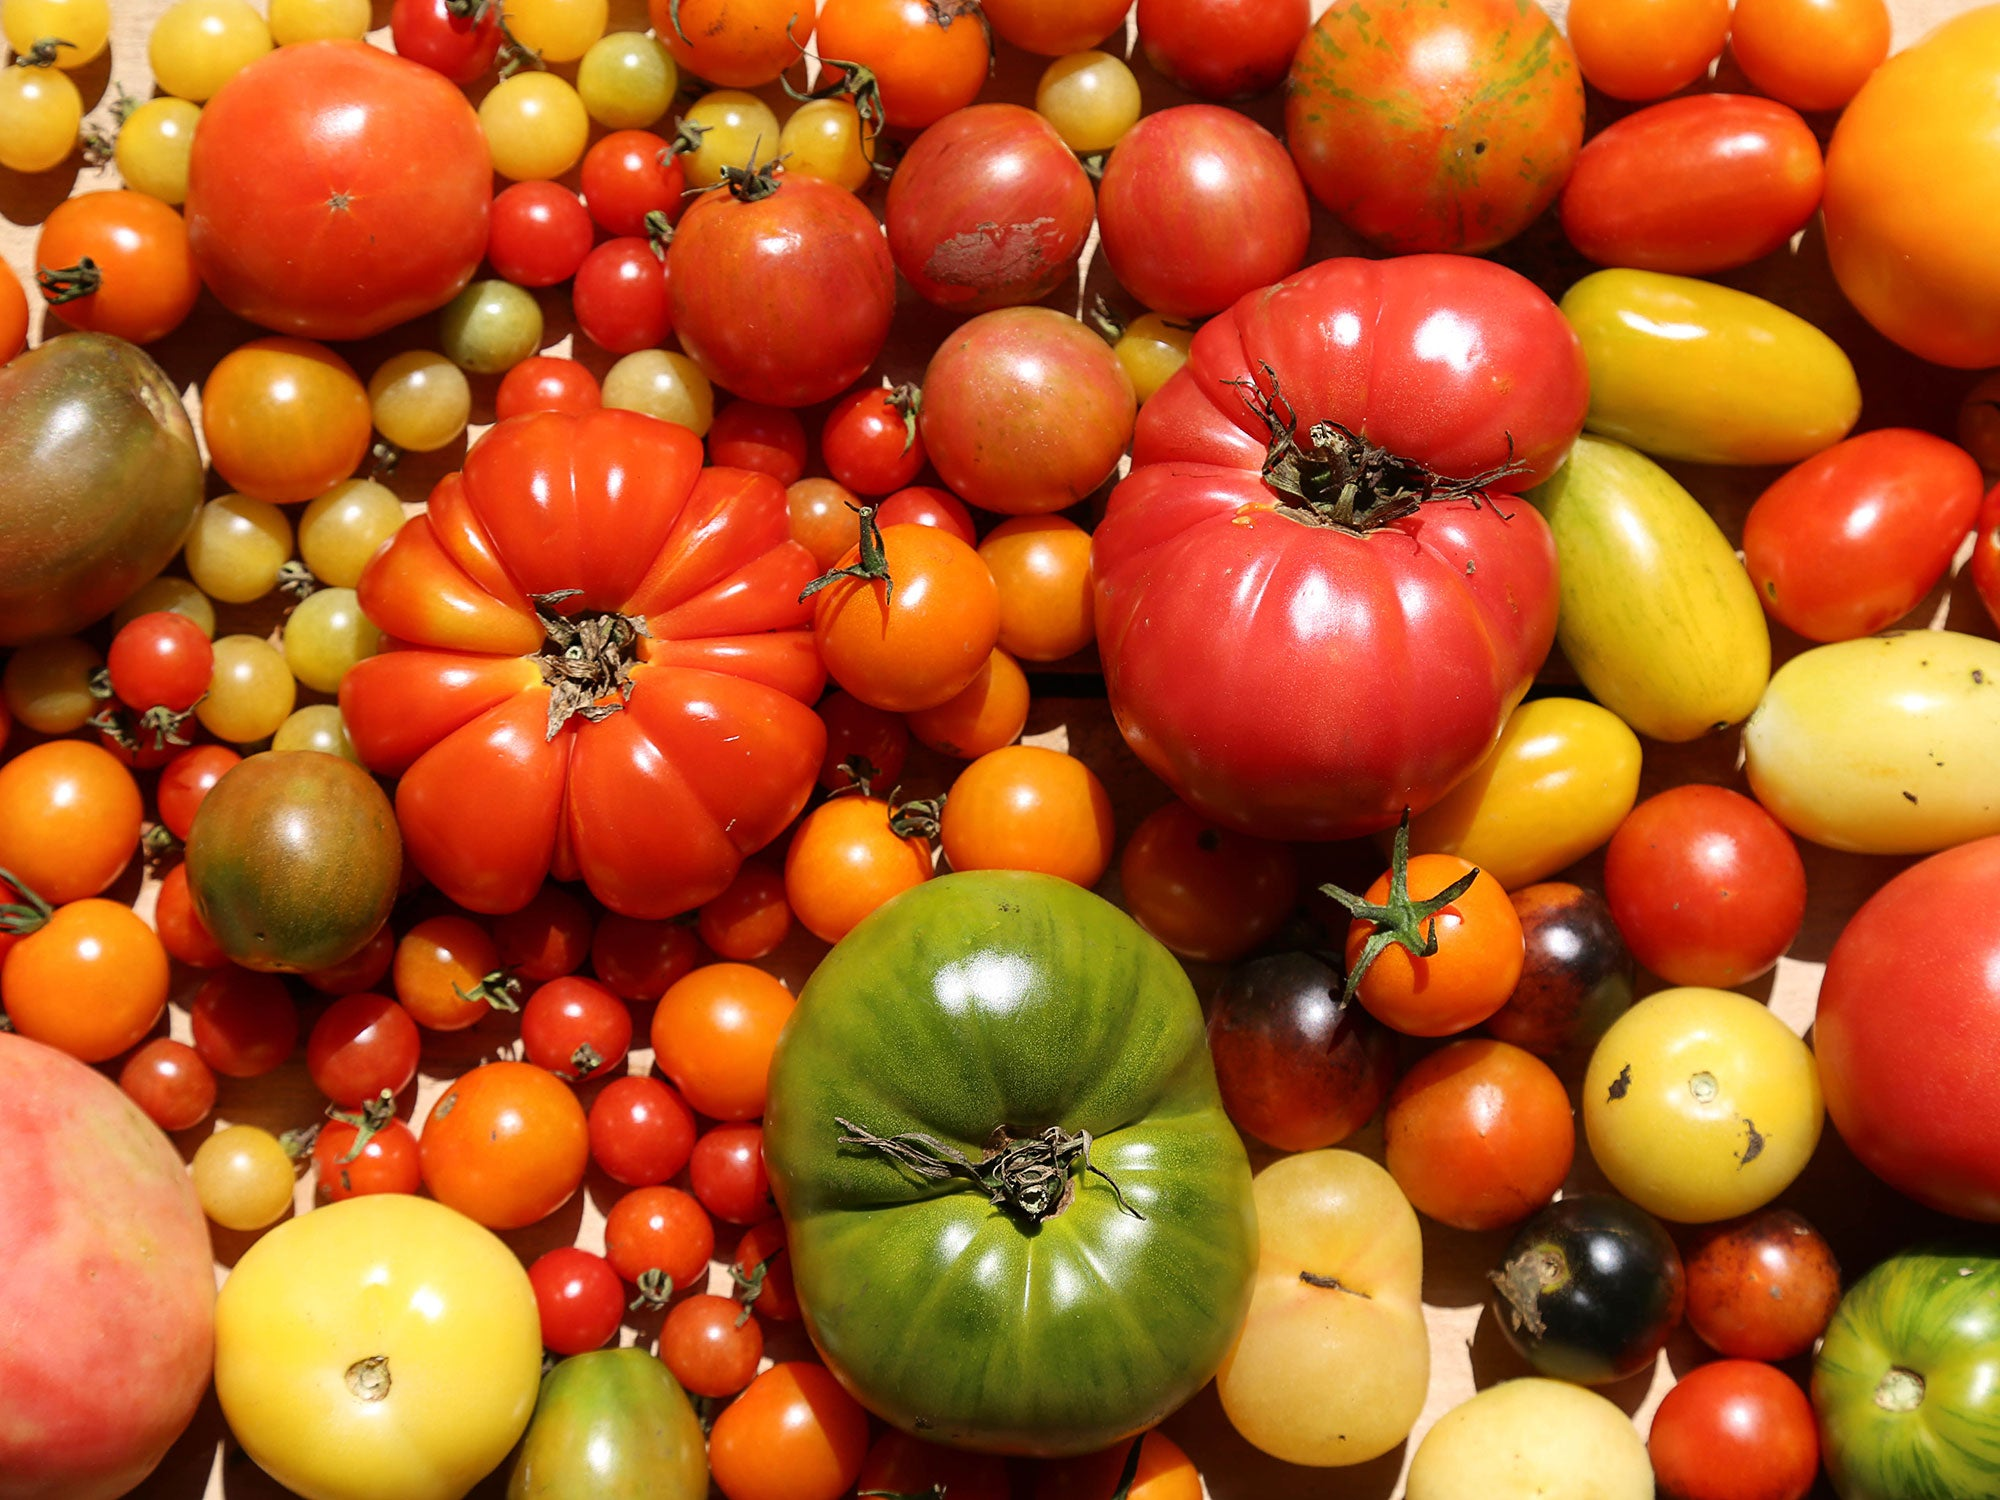 Listen to These Tomato-Mad Chefs on How to Make the Most of Your Summer Tomatoes